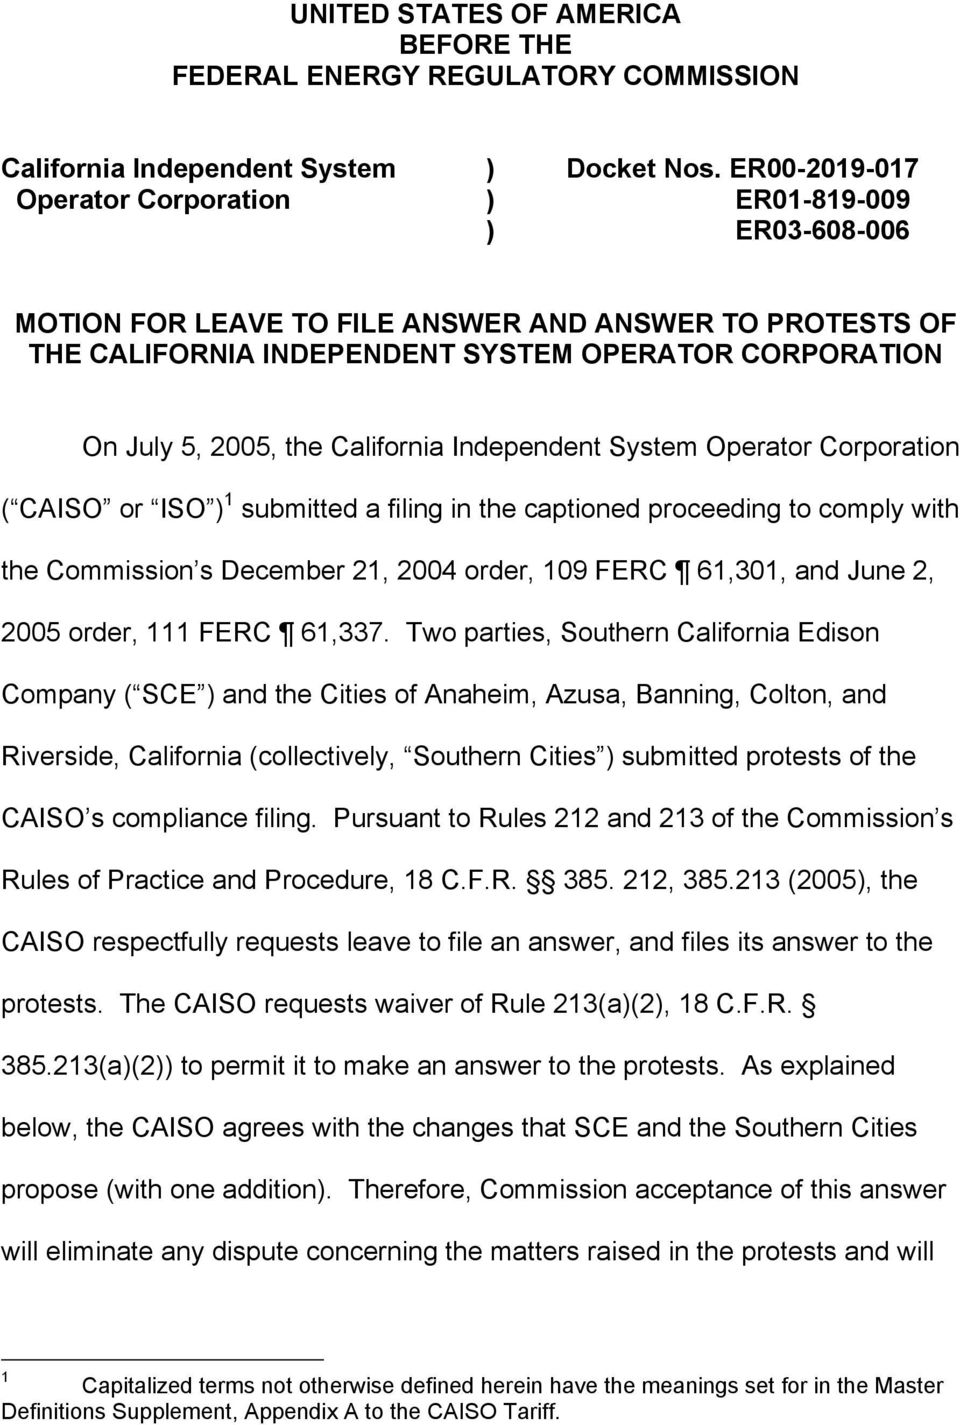 California Independent System Operator Corporation ( CAISO or ISO ) 1 submitted a filing in the captioned proceeding to comply with the Commission s December 21, 2004 order, 109 FERC 61,301, and June